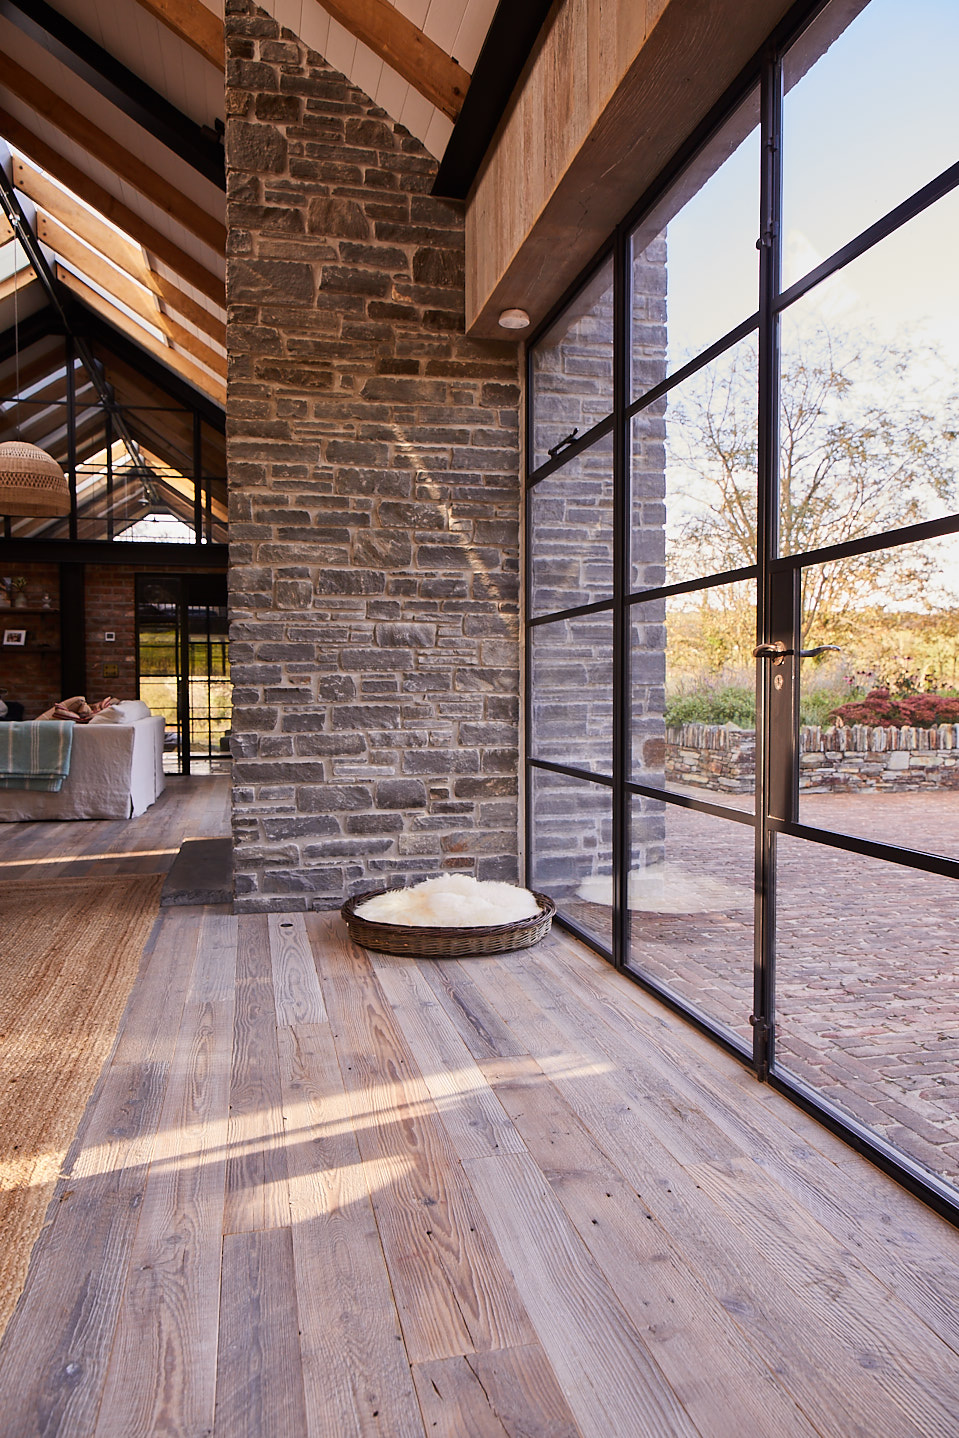 Crittall glass wall with reclaimed oak flooring